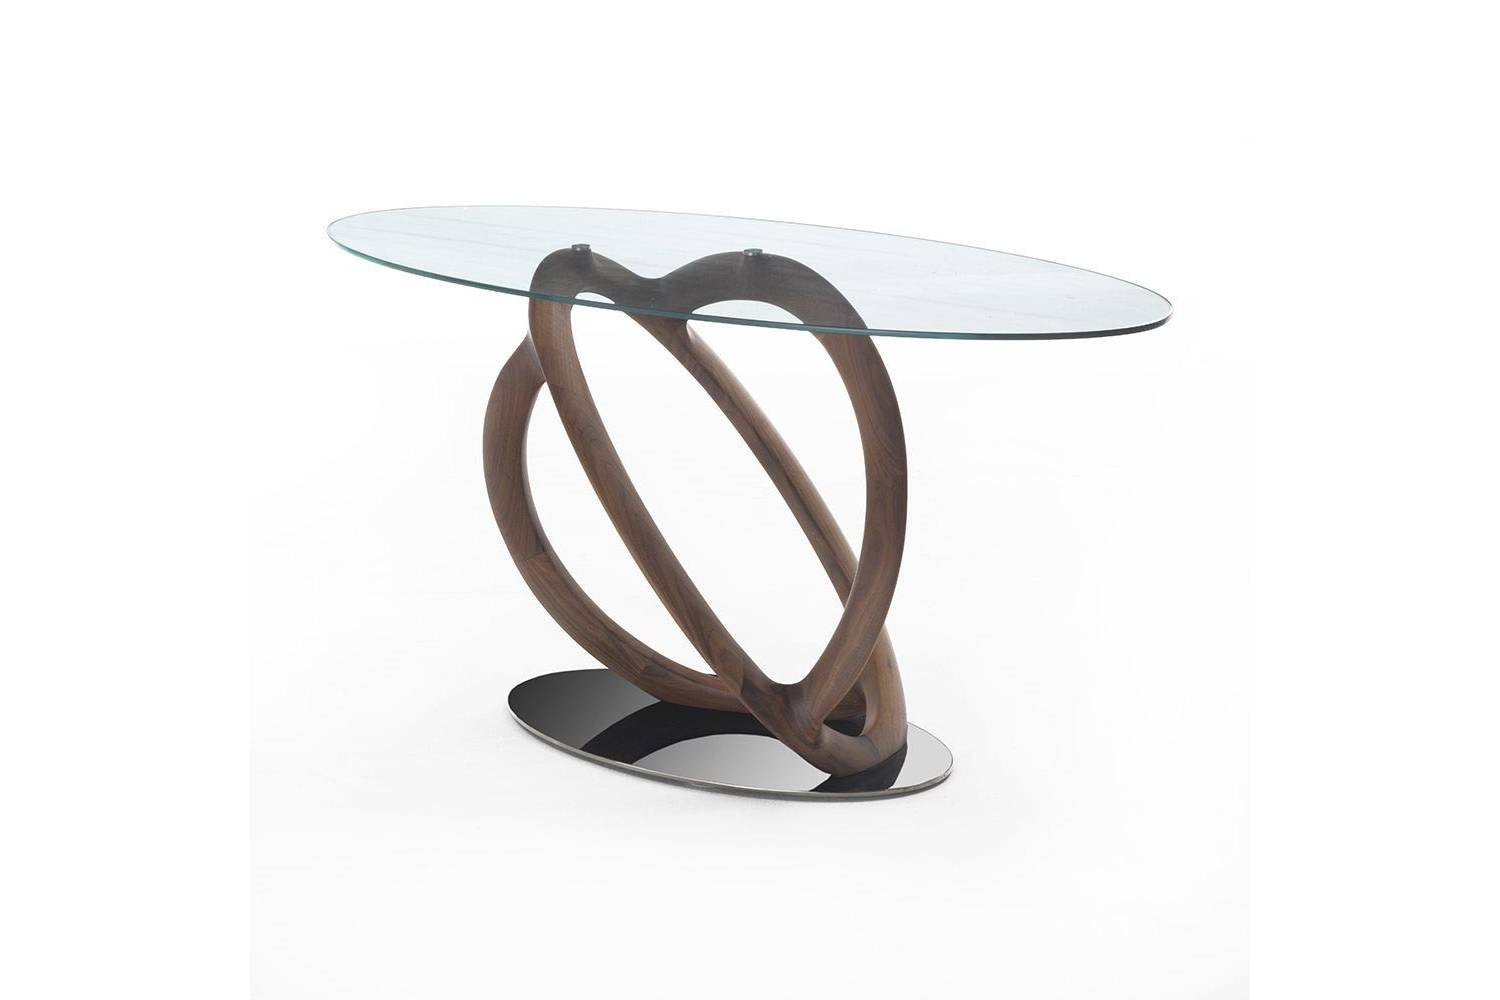 Kosmo Side Table by C. Ballabio for Porada